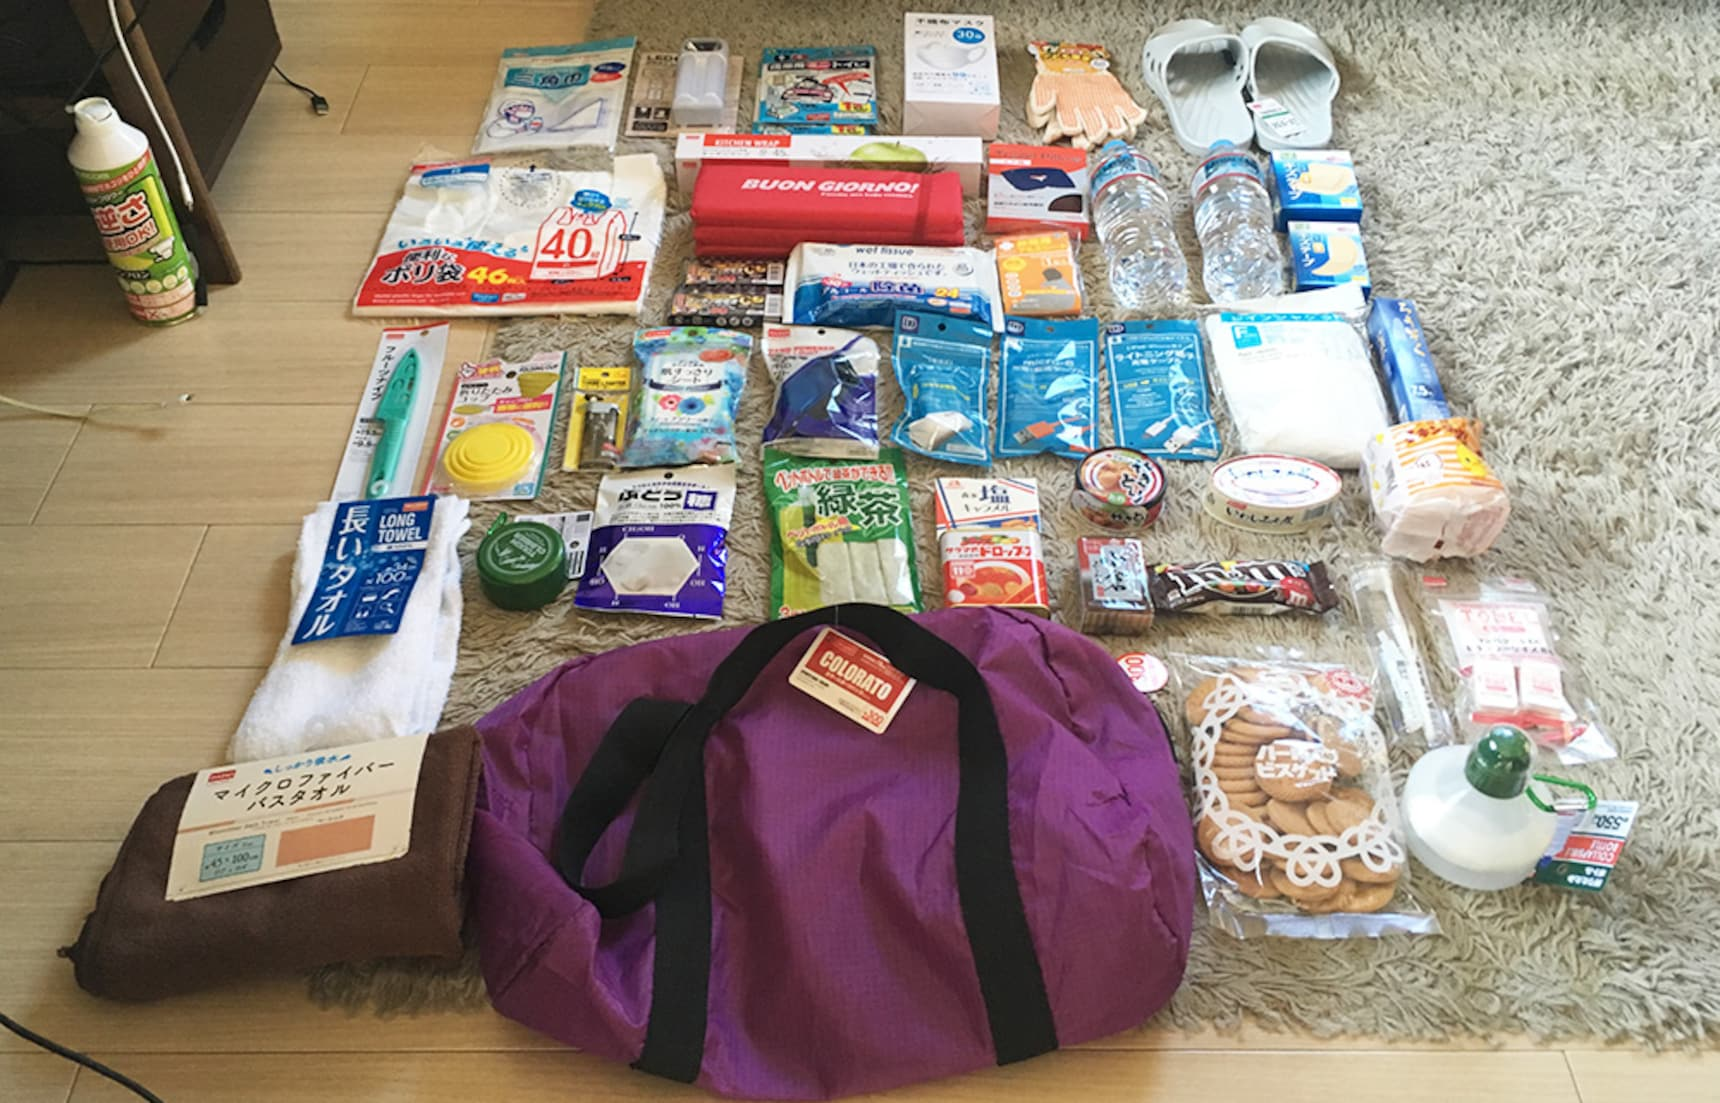 ¥100 Items You Need for a Preparedness Kit